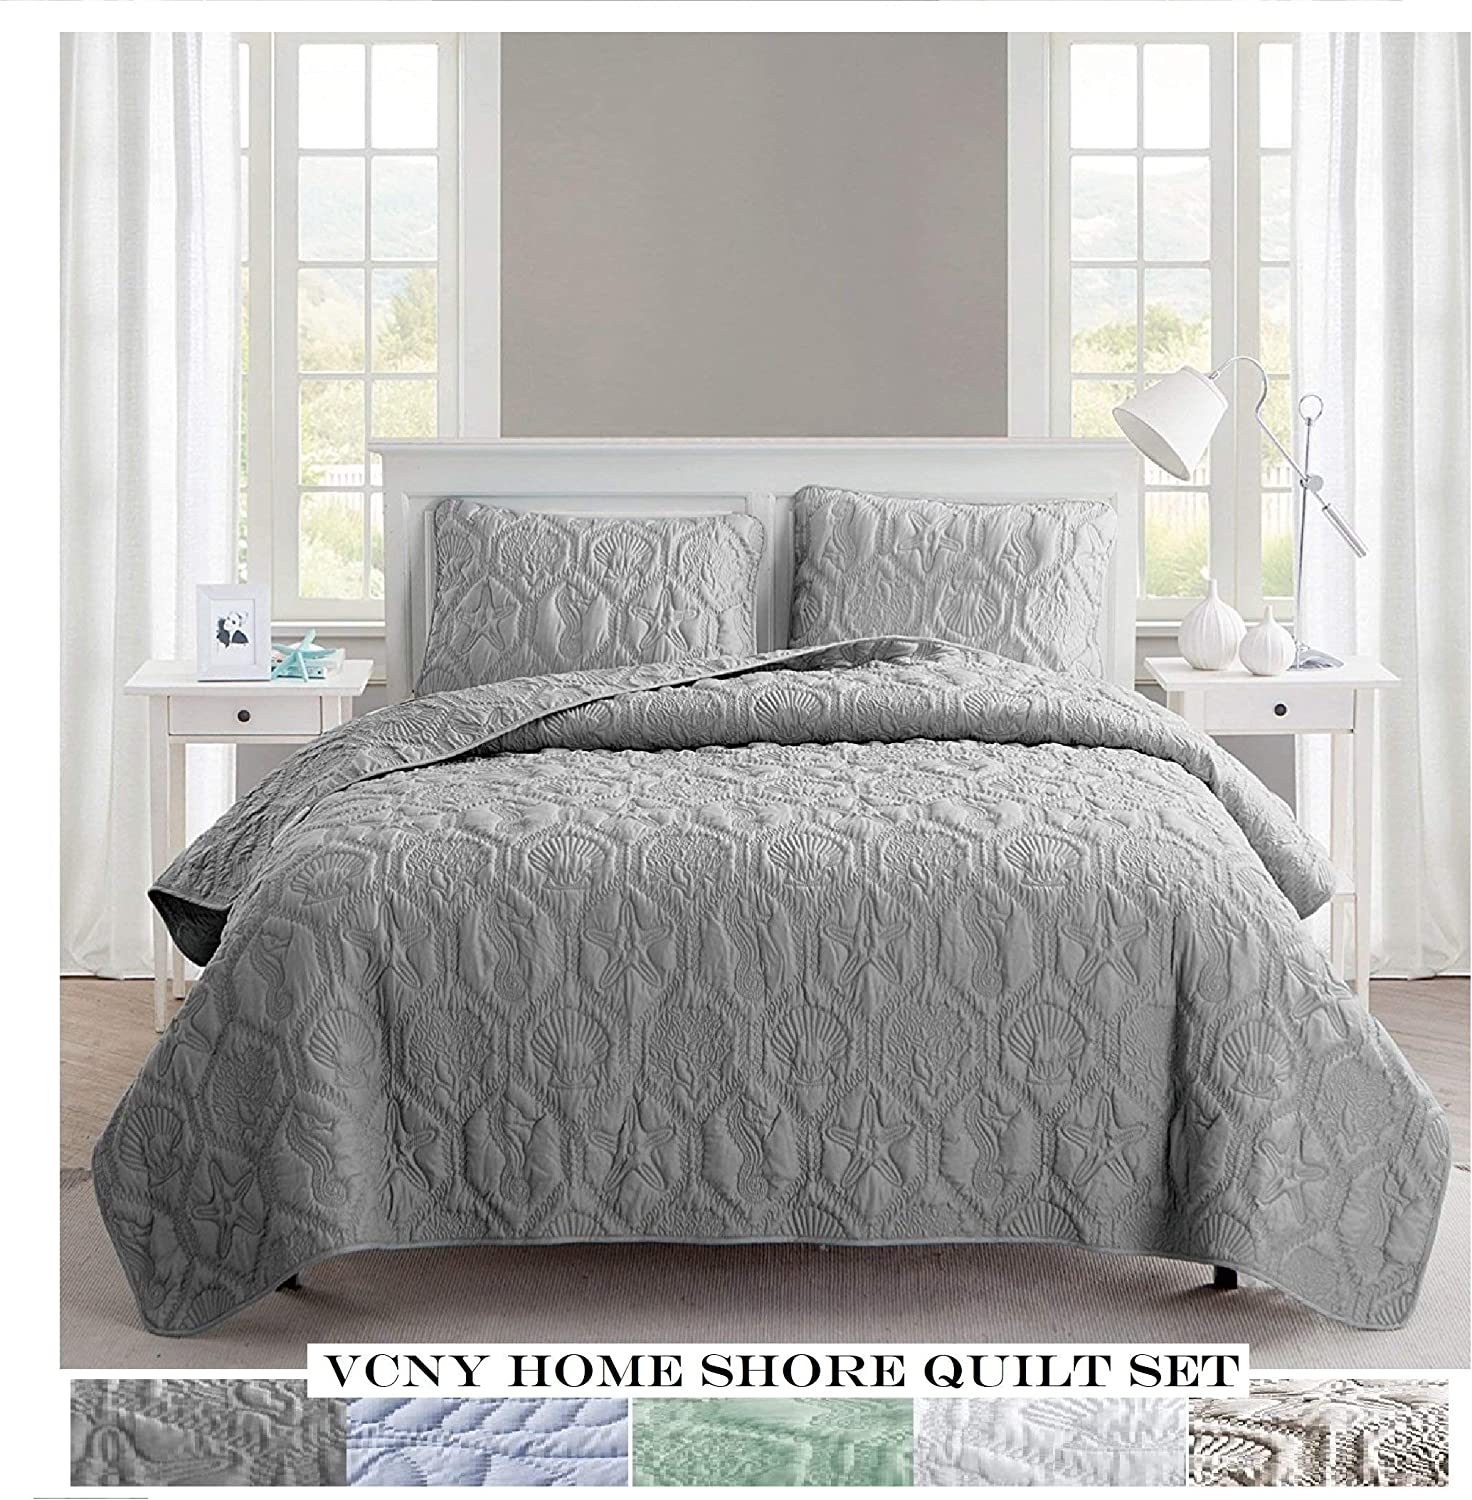 VCNY Home Shore Quilt Set, King, Grey